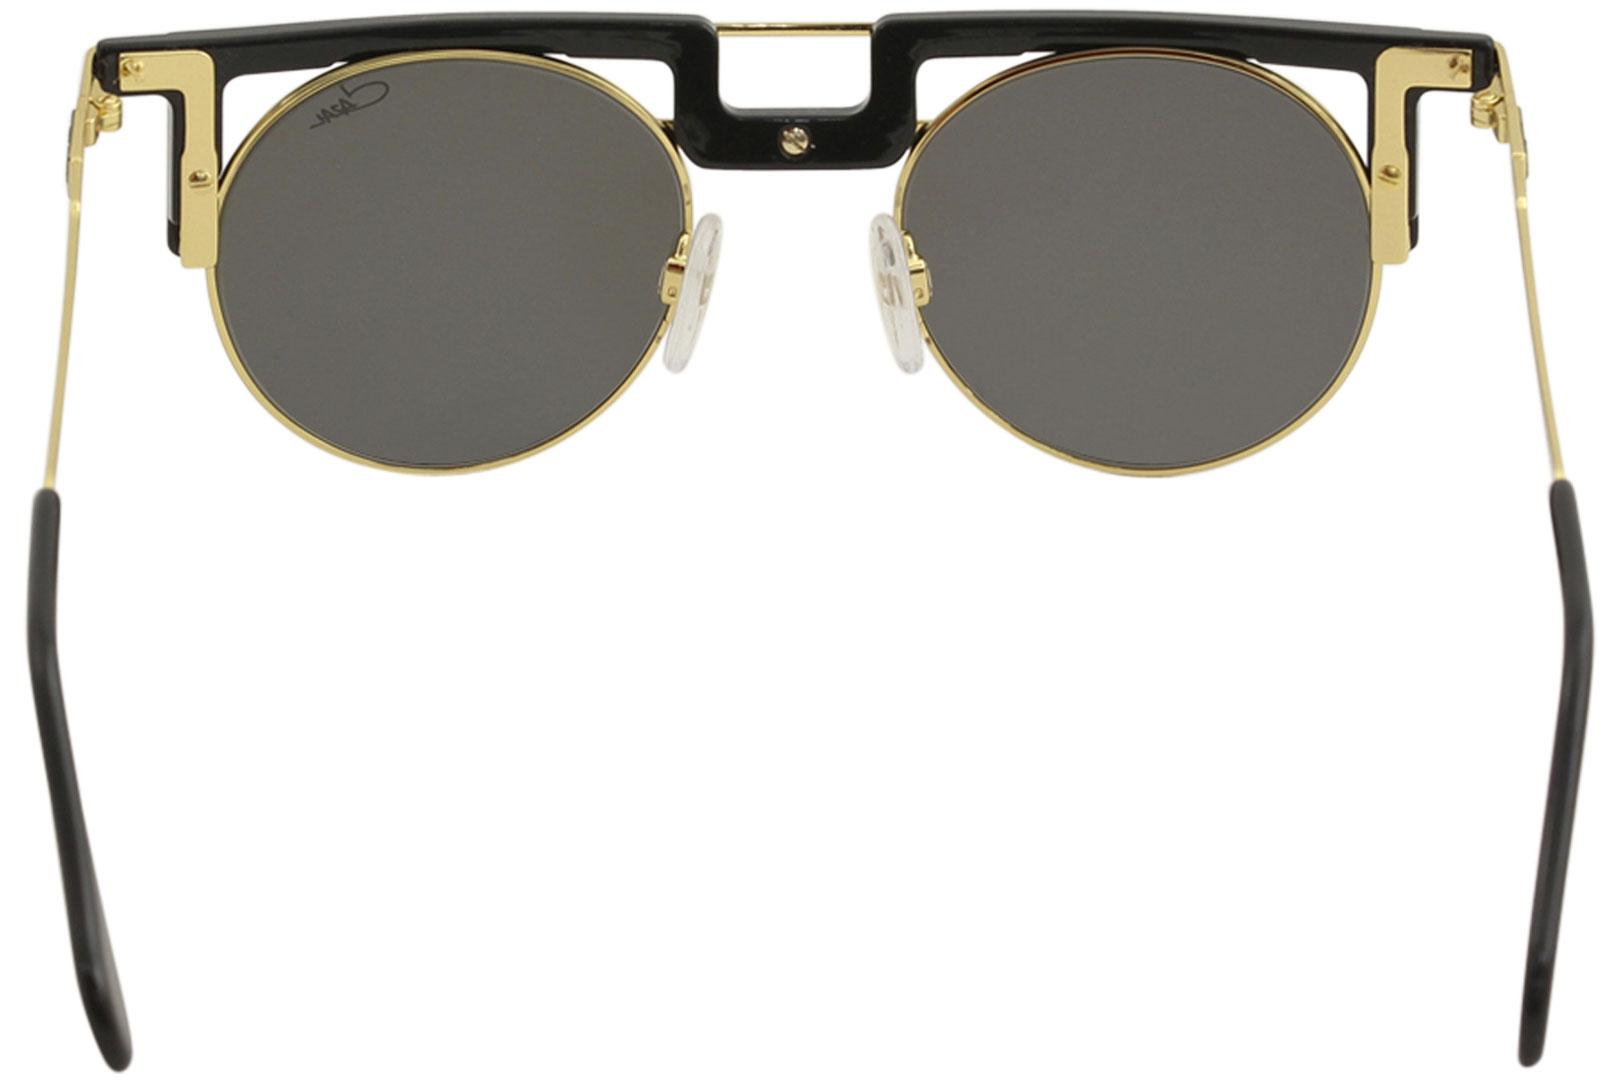 f7c9351236 Ray Ban Sunglasses 745 « One More Soul